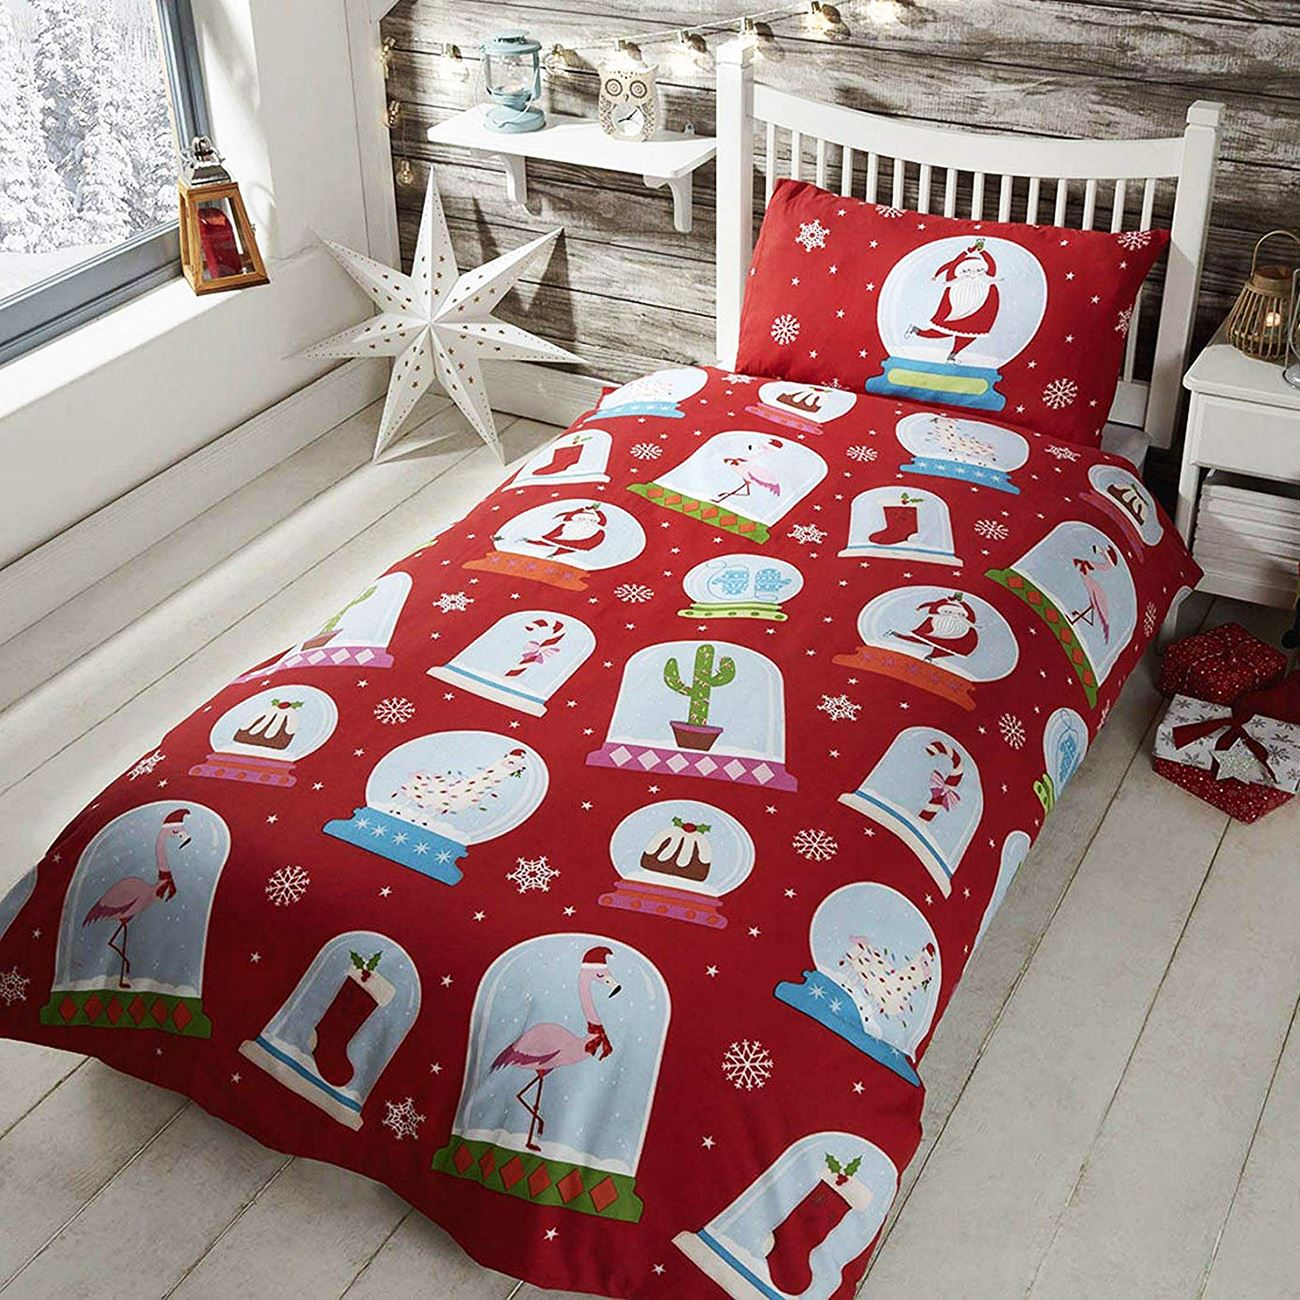 Christmas Bedding.Details About Snow Globe Christmas Single Duvet Cover Set Red Bedding Kids